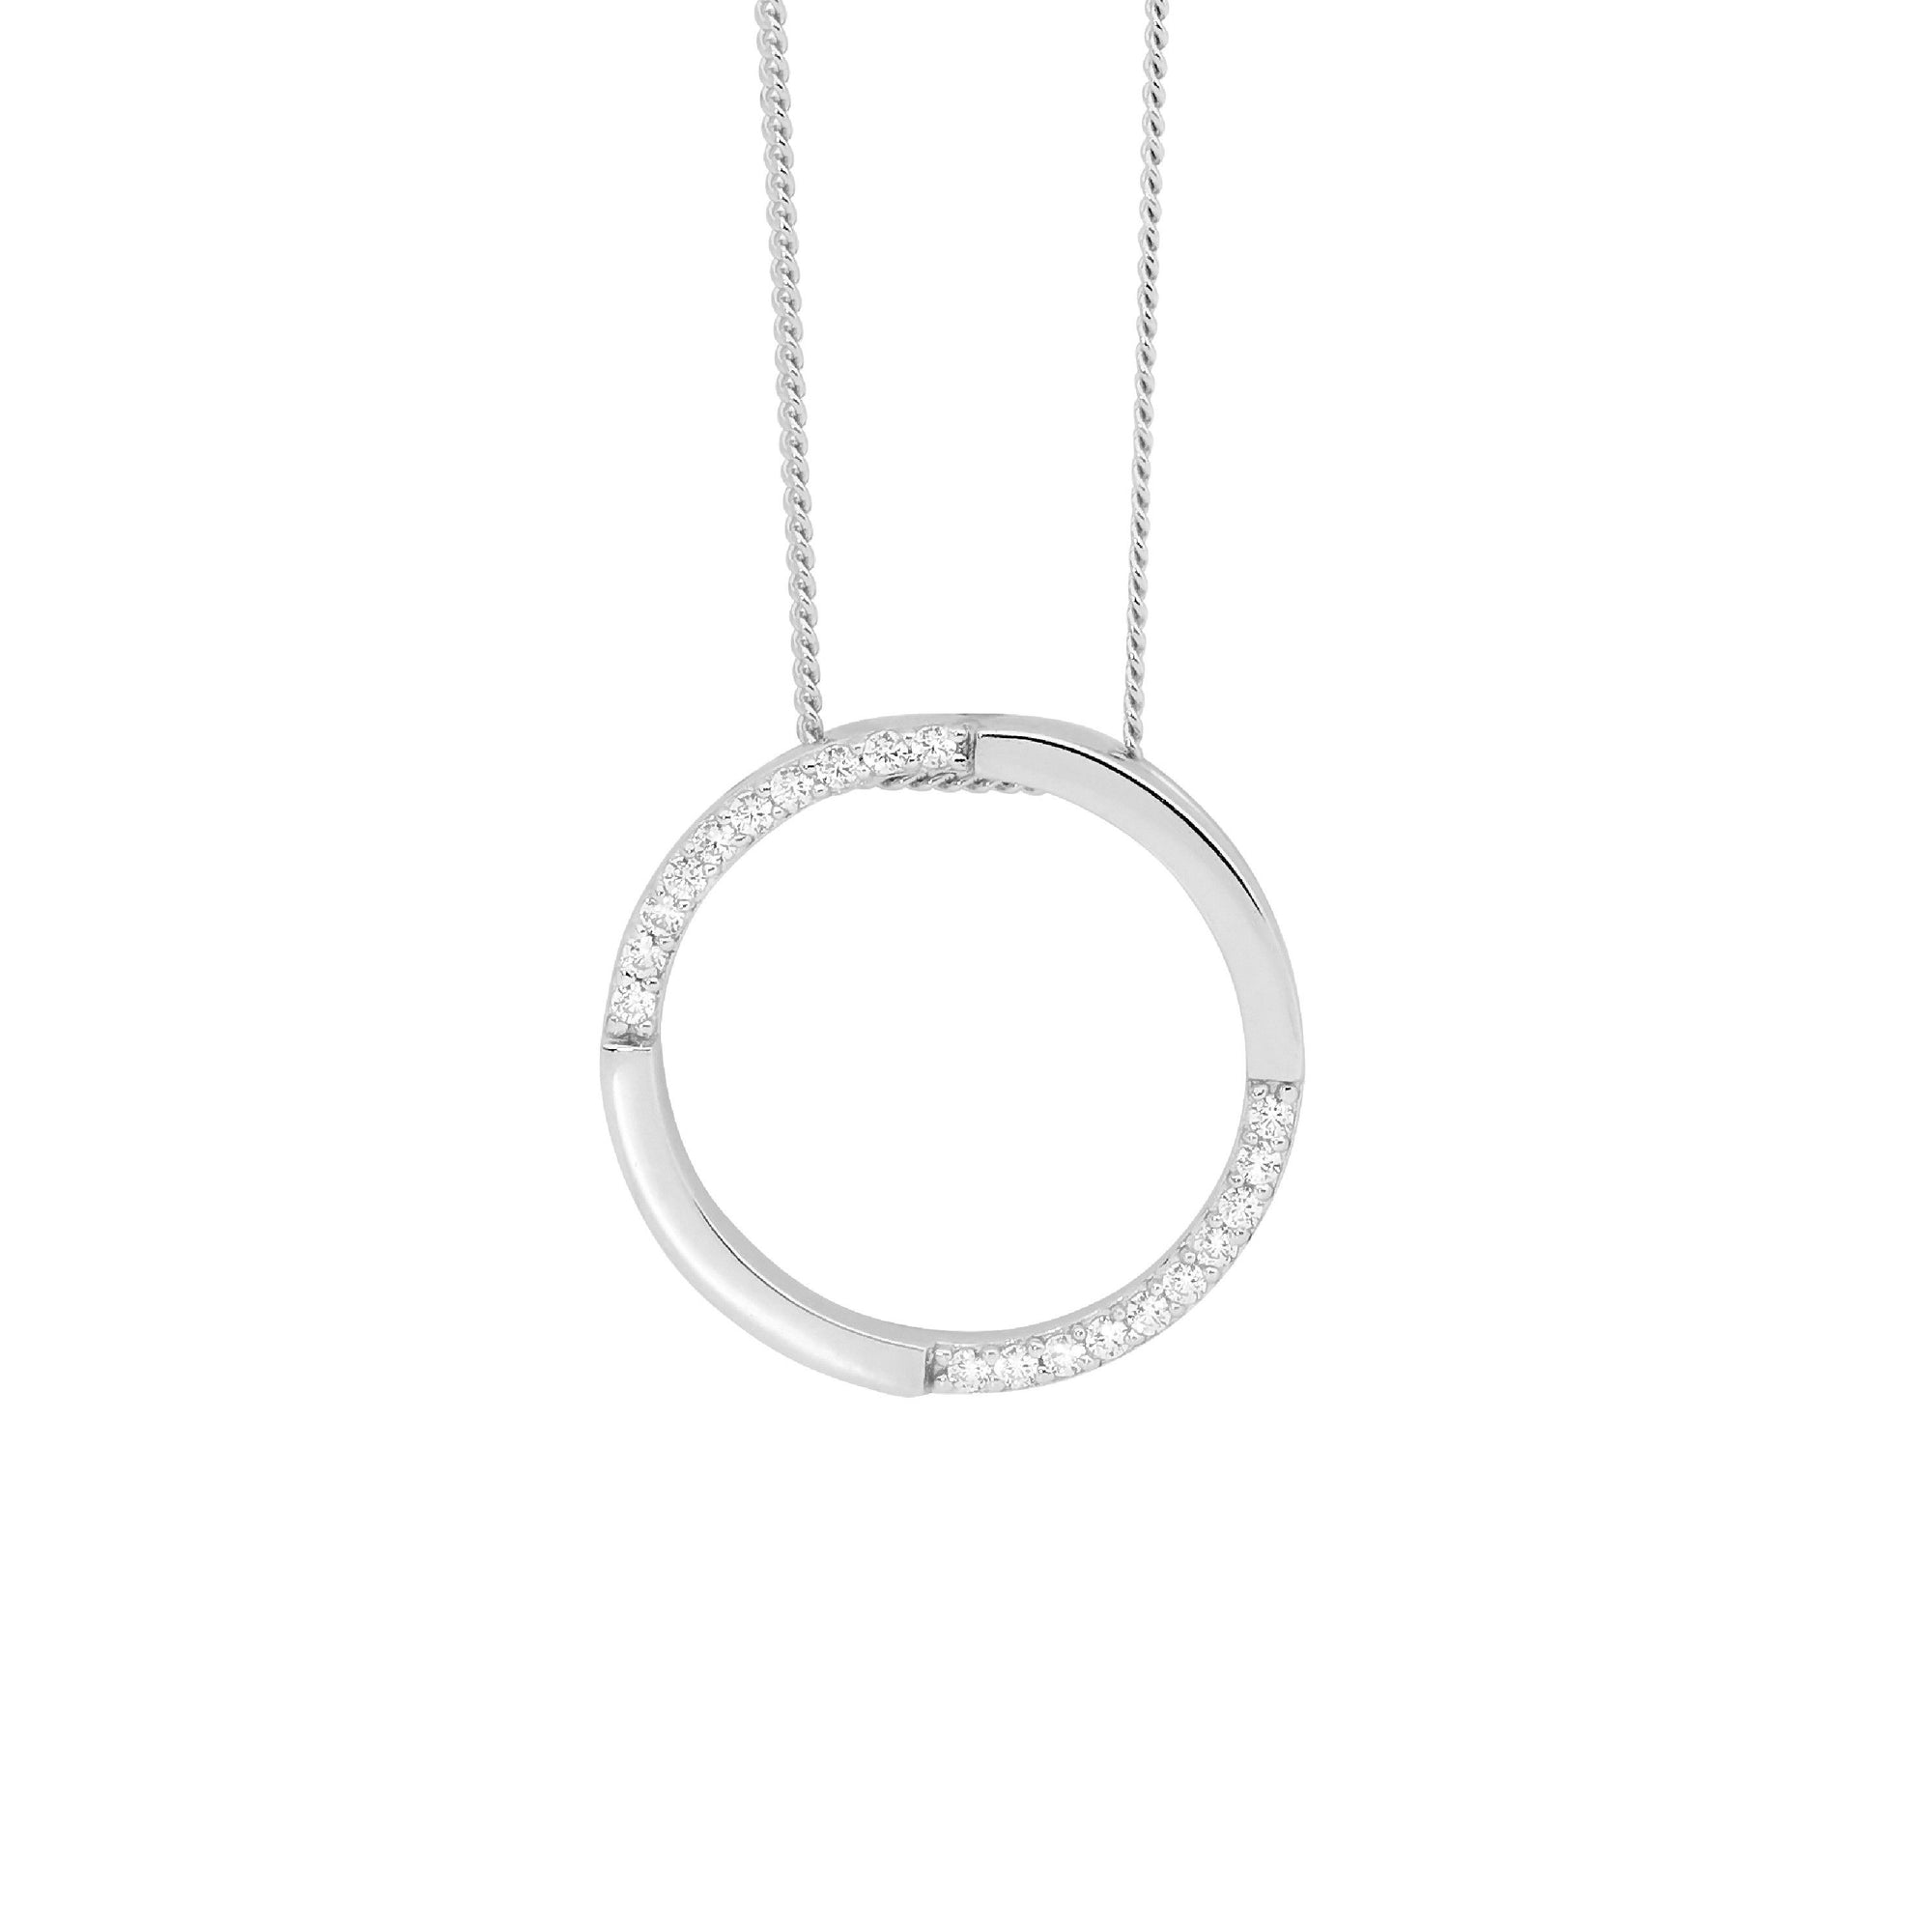 Sterling silver circle pendant - Red Carpet Jewellers